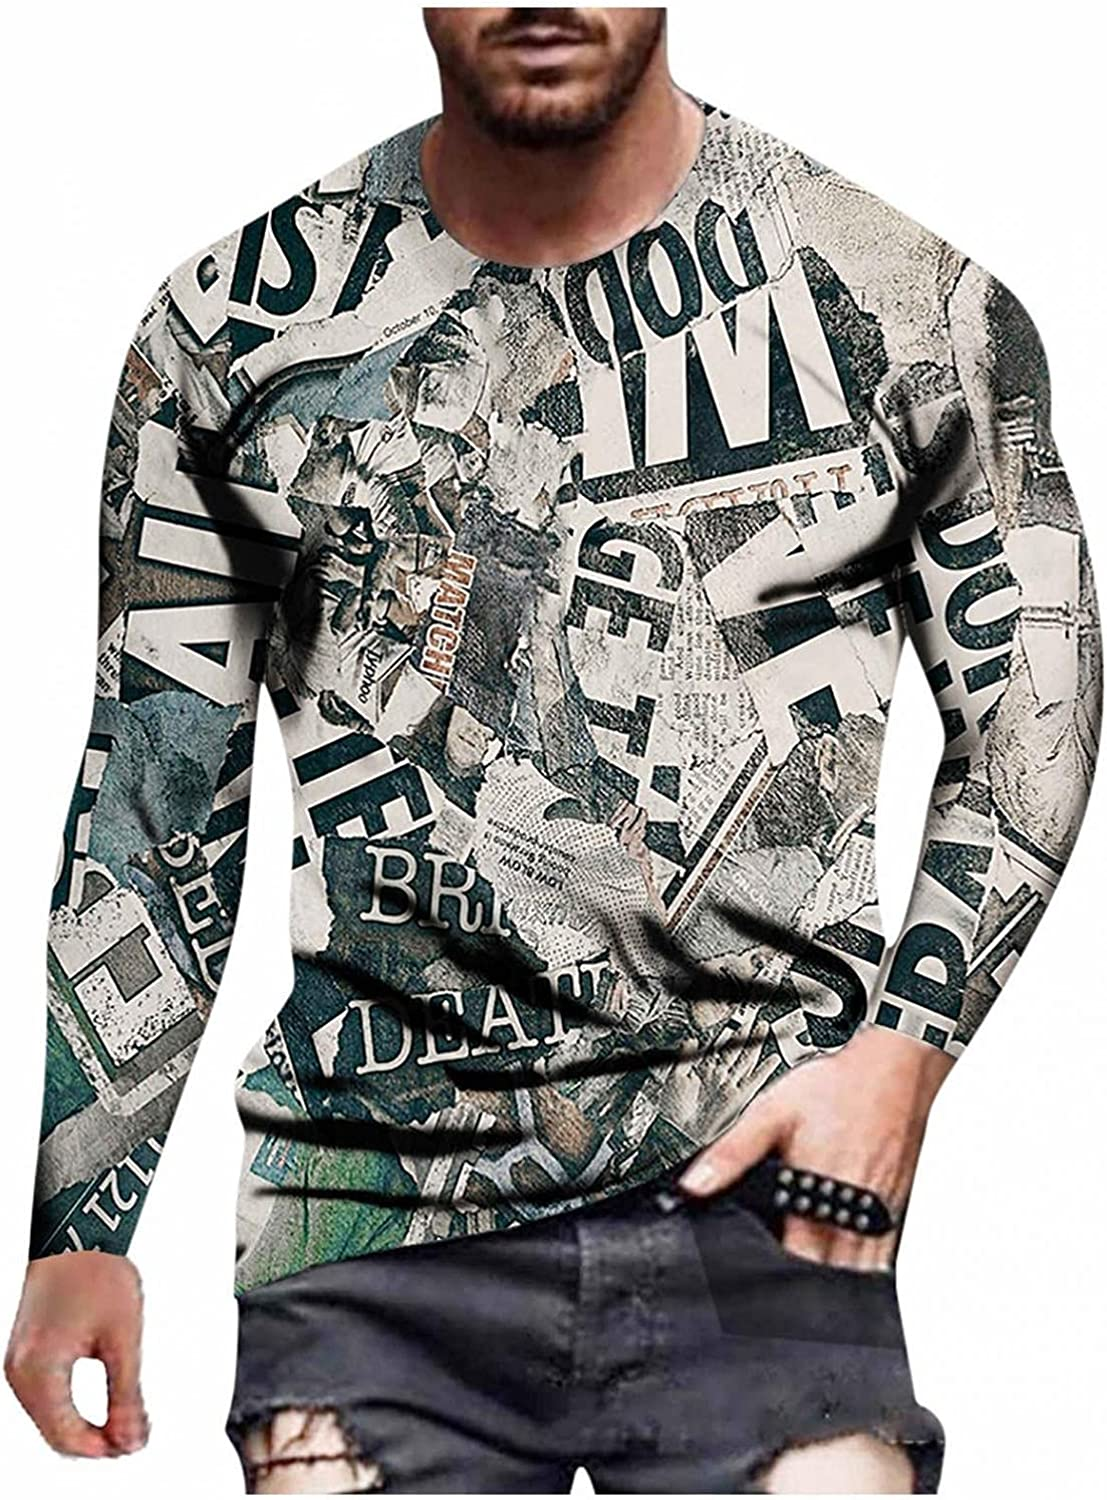 Mens Shirts Men's Autumn Winter Casual Printed Newspaper Round Neck Long Sleeve Tee Shirts for Men Polo Shirts for Men